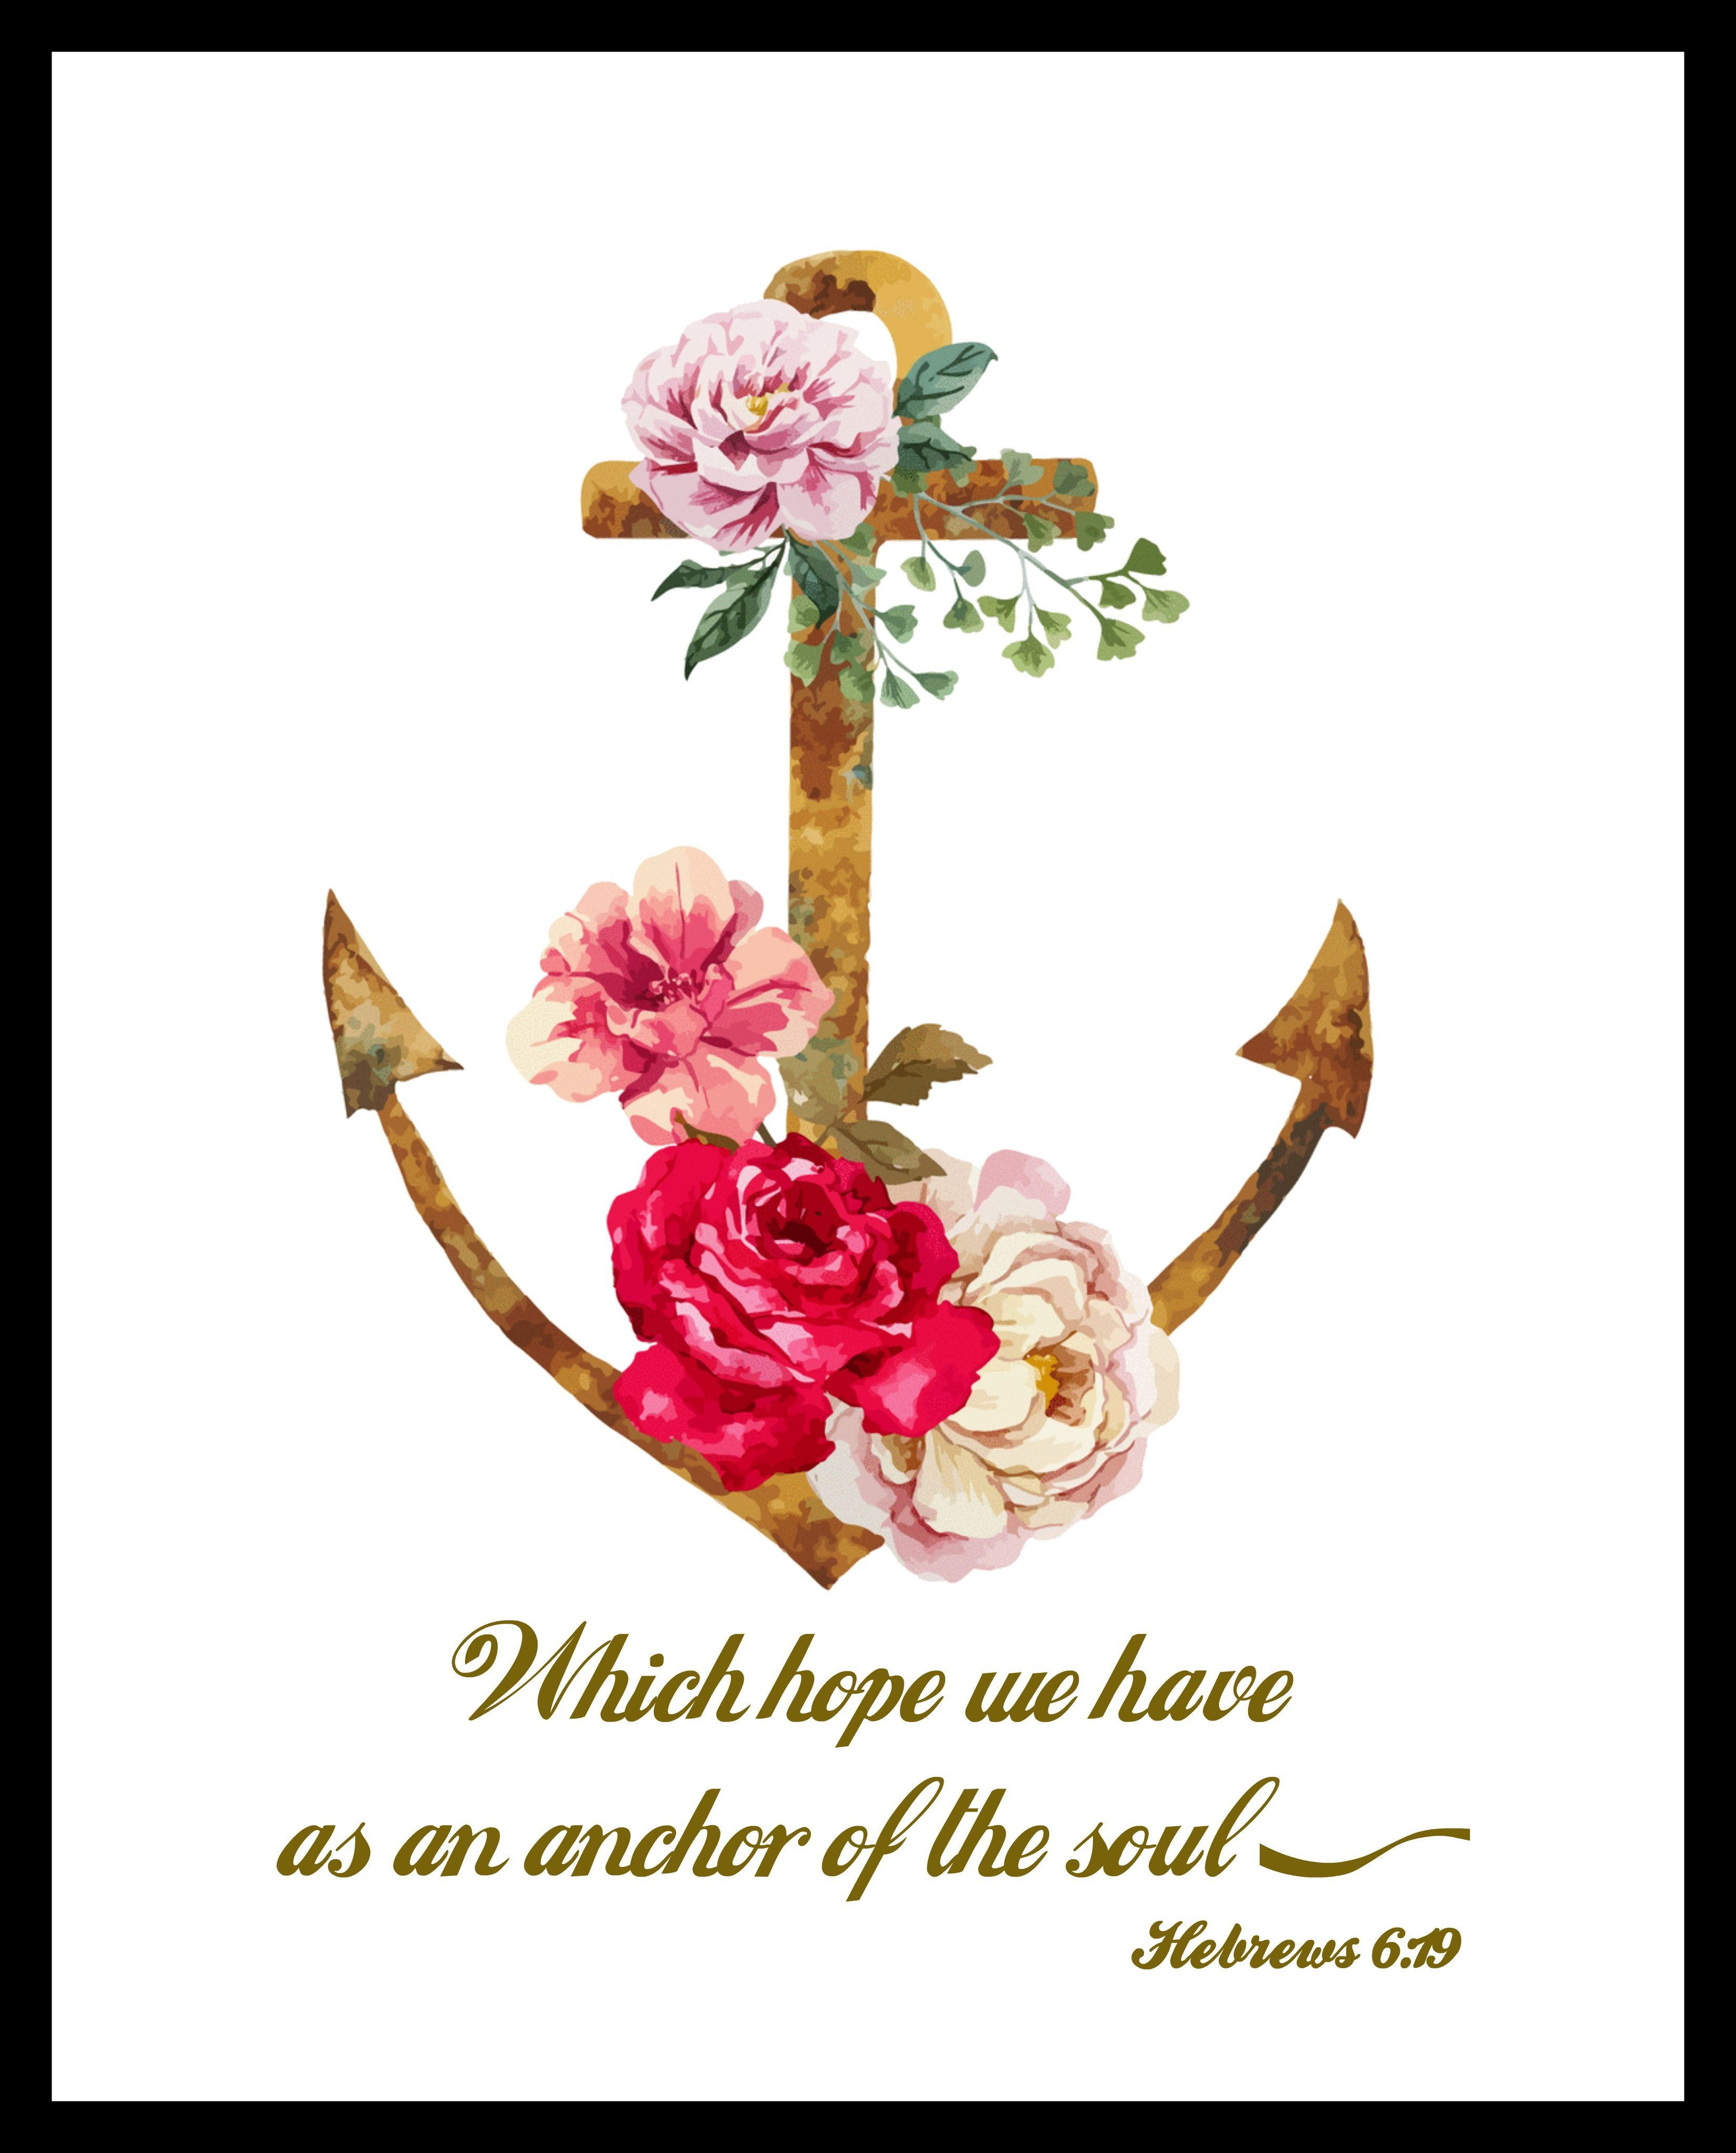 Which hope we have as an anchor wall decor unframed